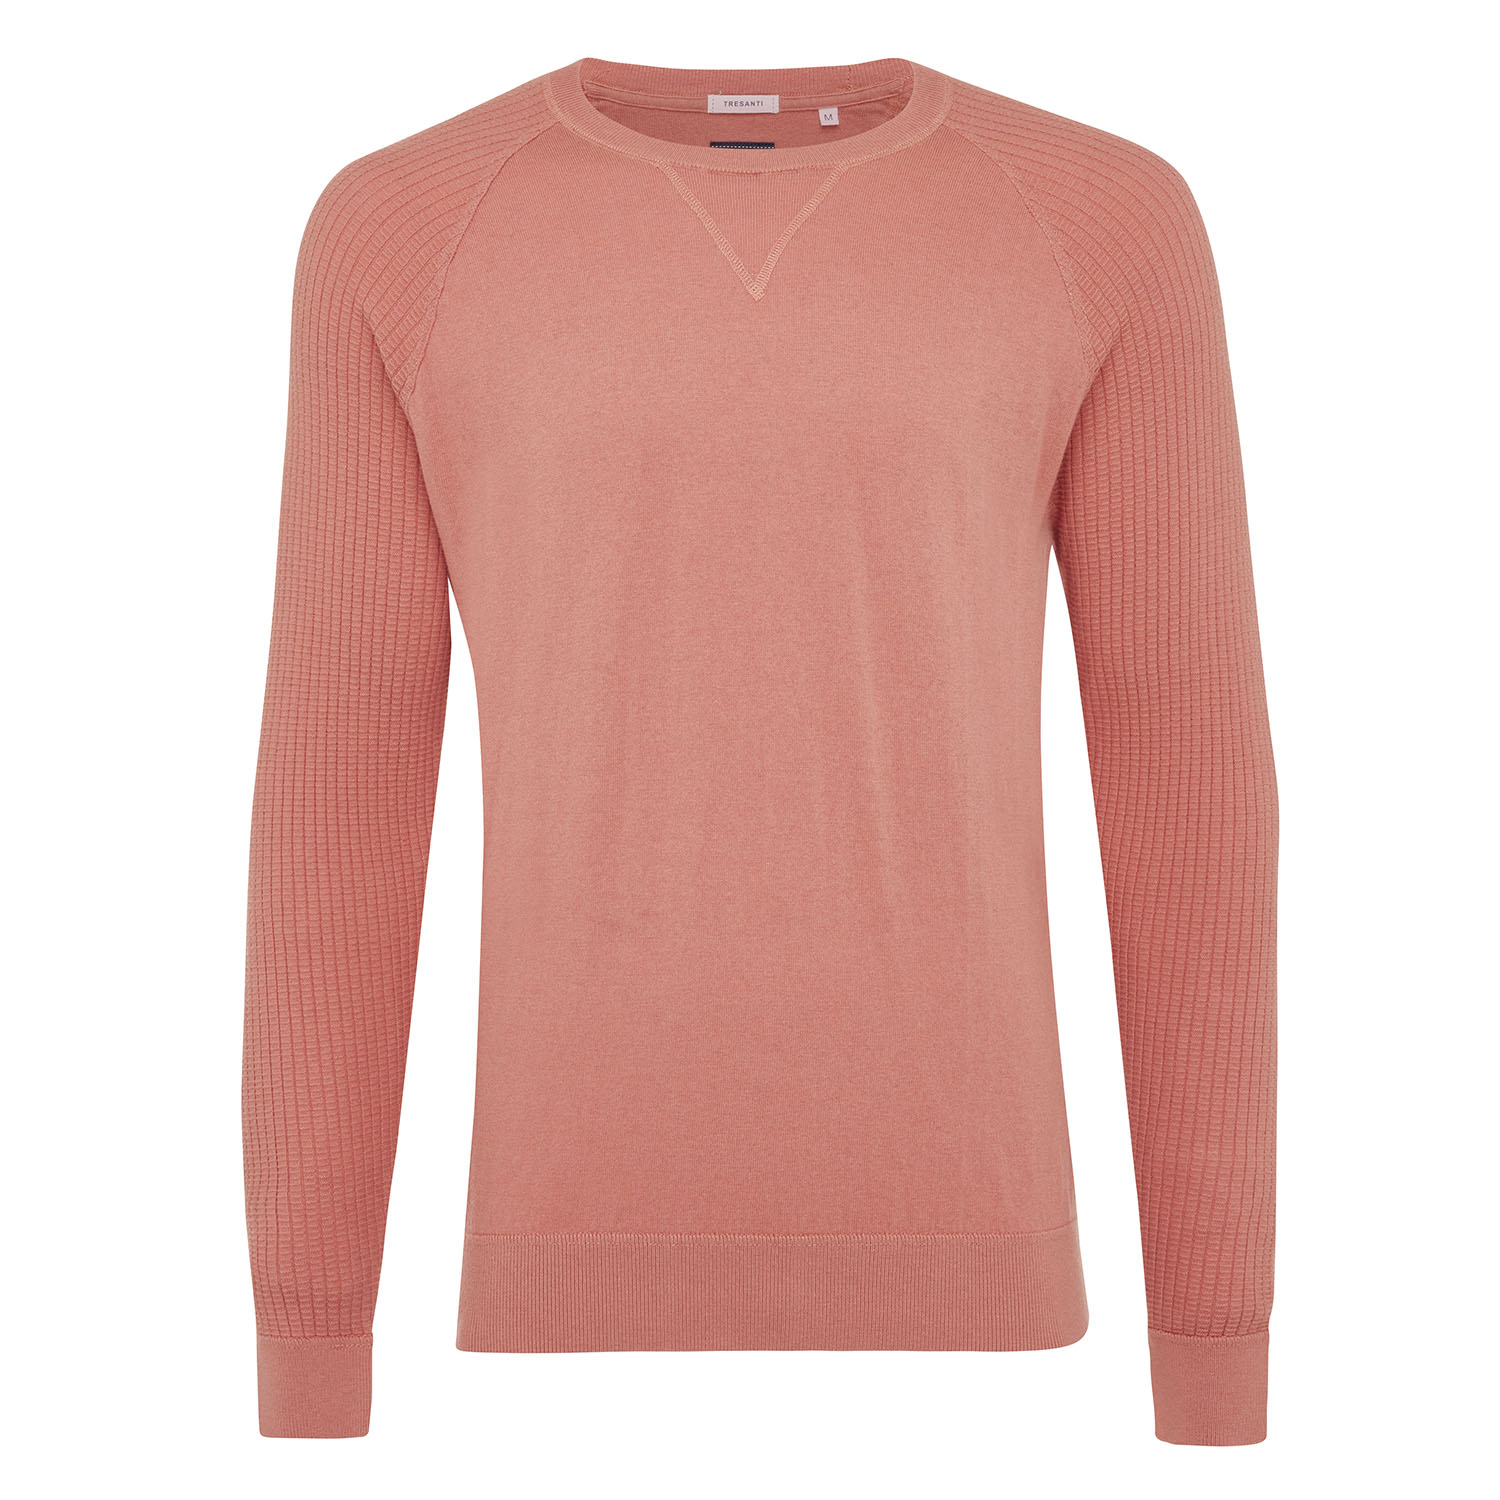 Magnus | Pullover rib sleeves pink cotton/cashmere